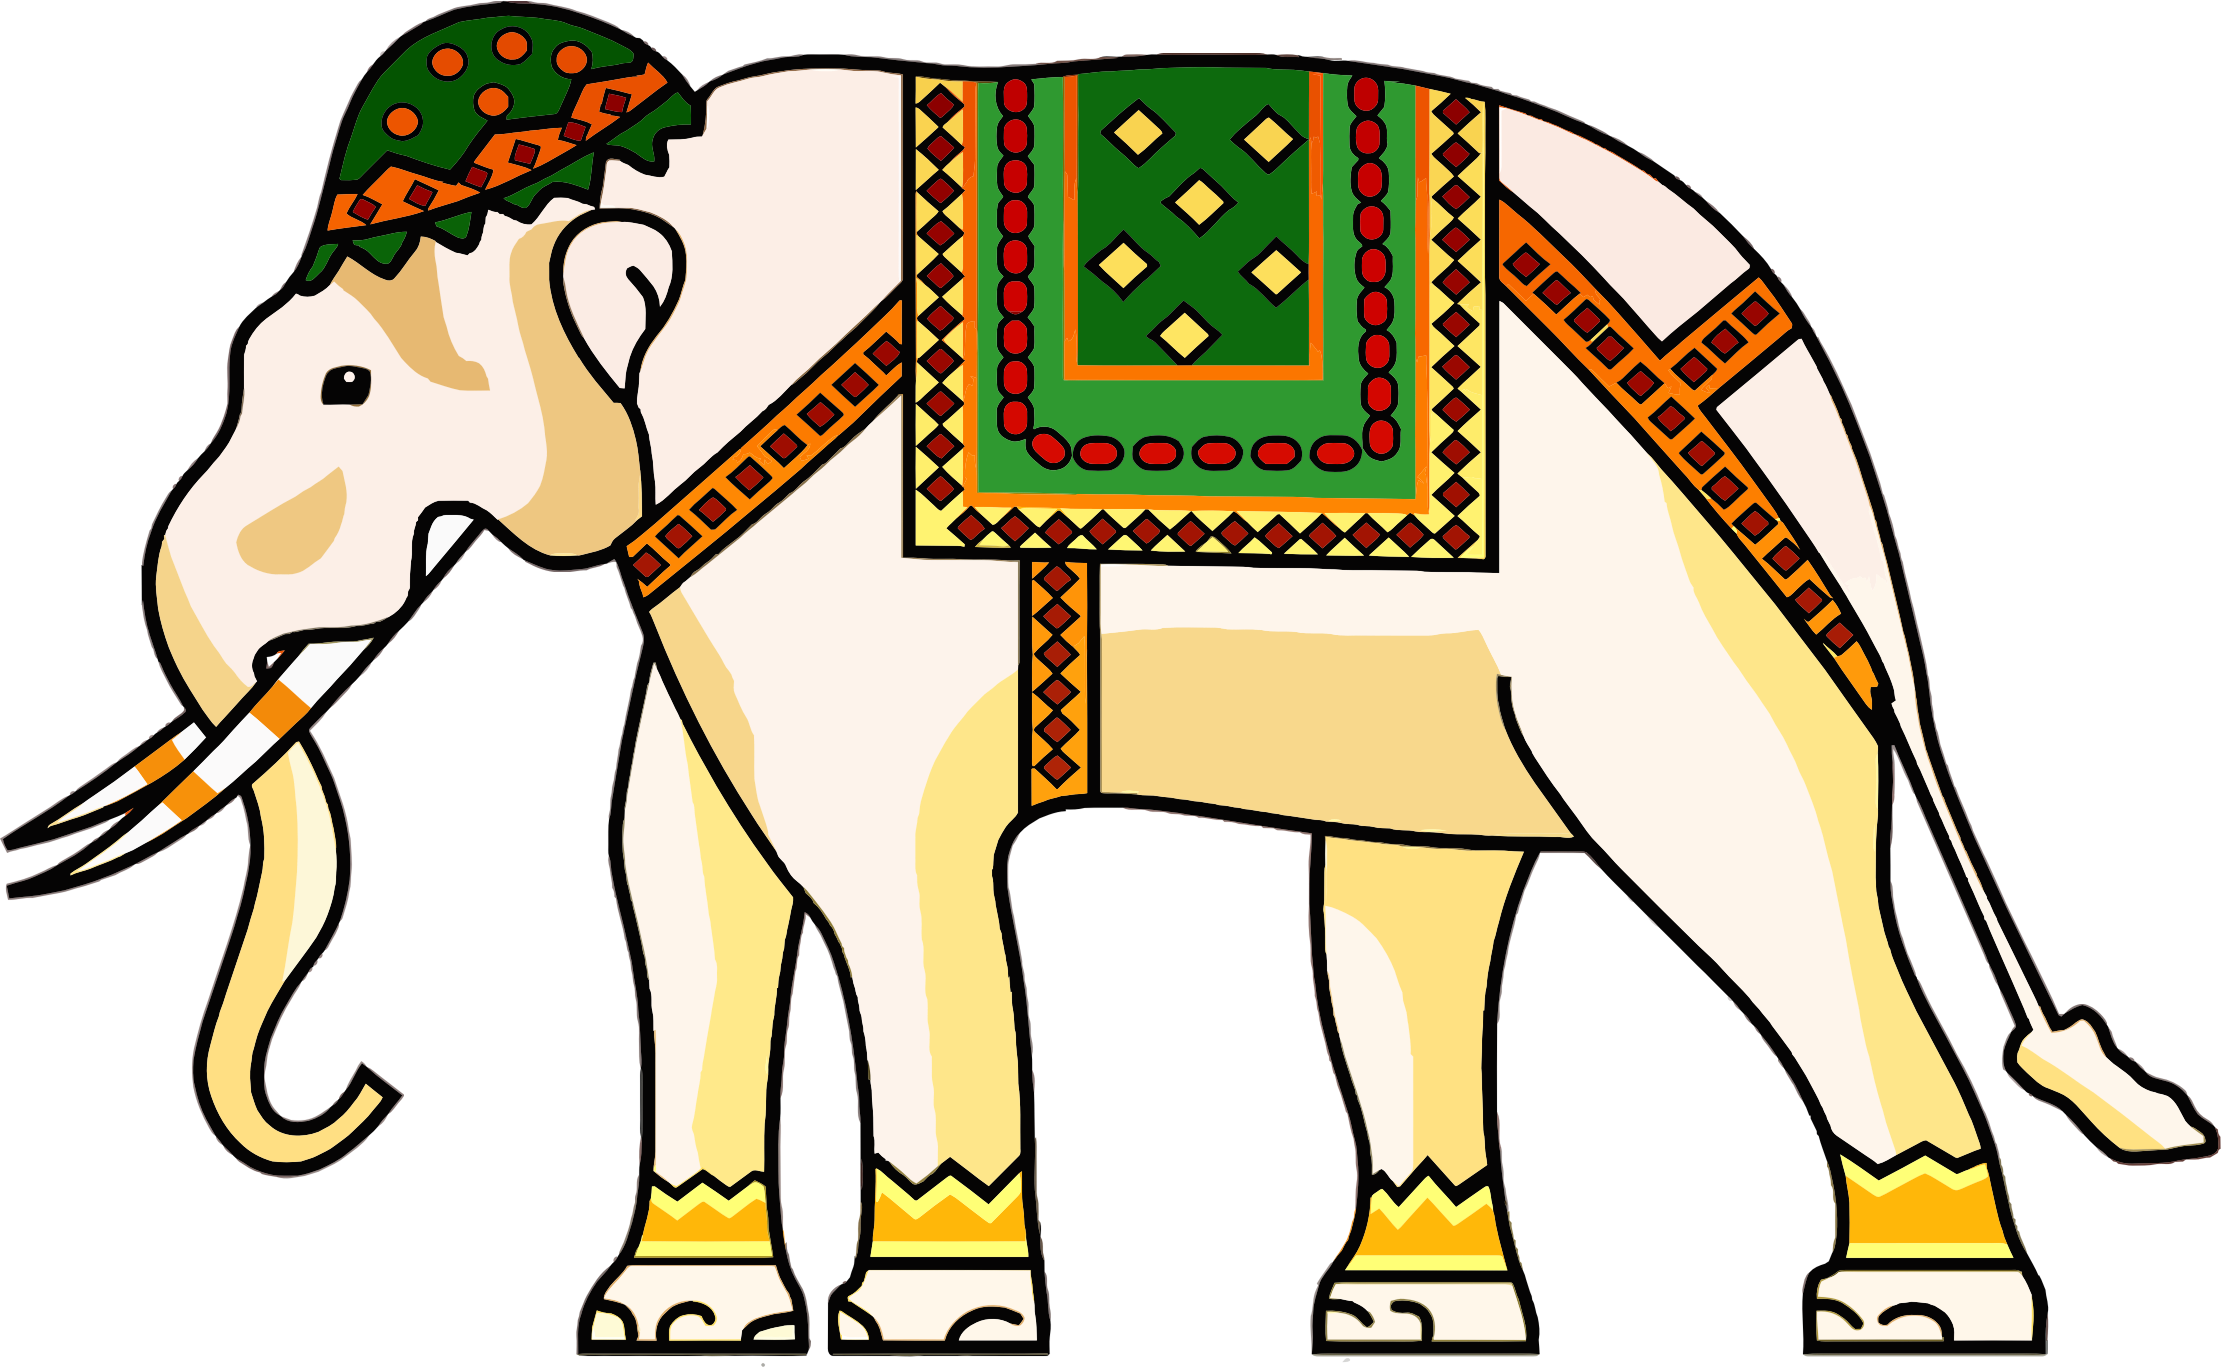 microsoft clip art elephant - photo #27